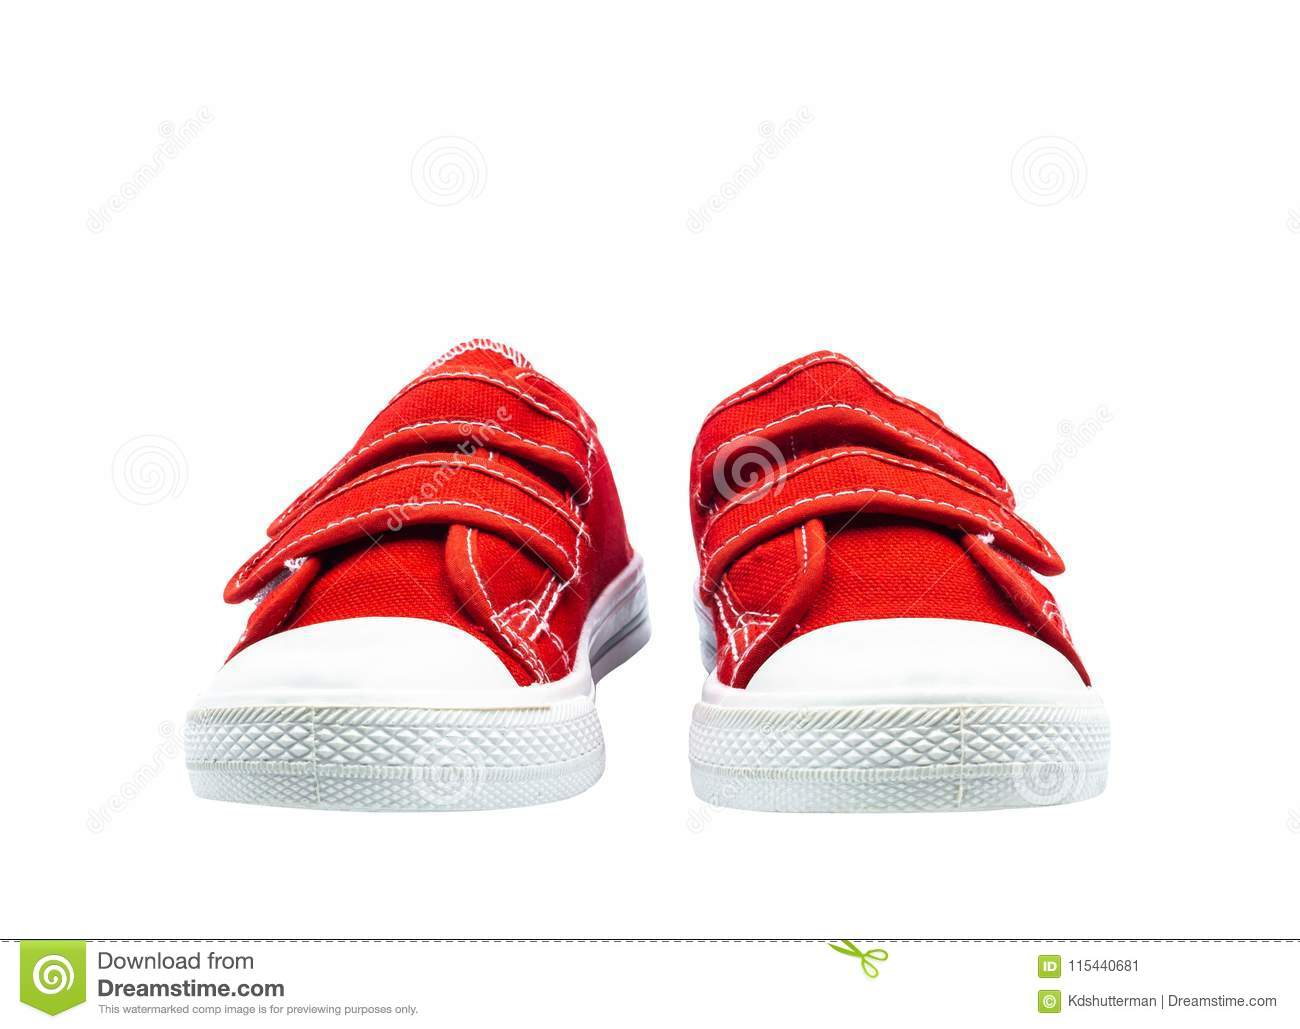 c40f249e04489 Unbranded modern sport shoes. Pair of new sneaker red thick fabric. Fashion  for kids